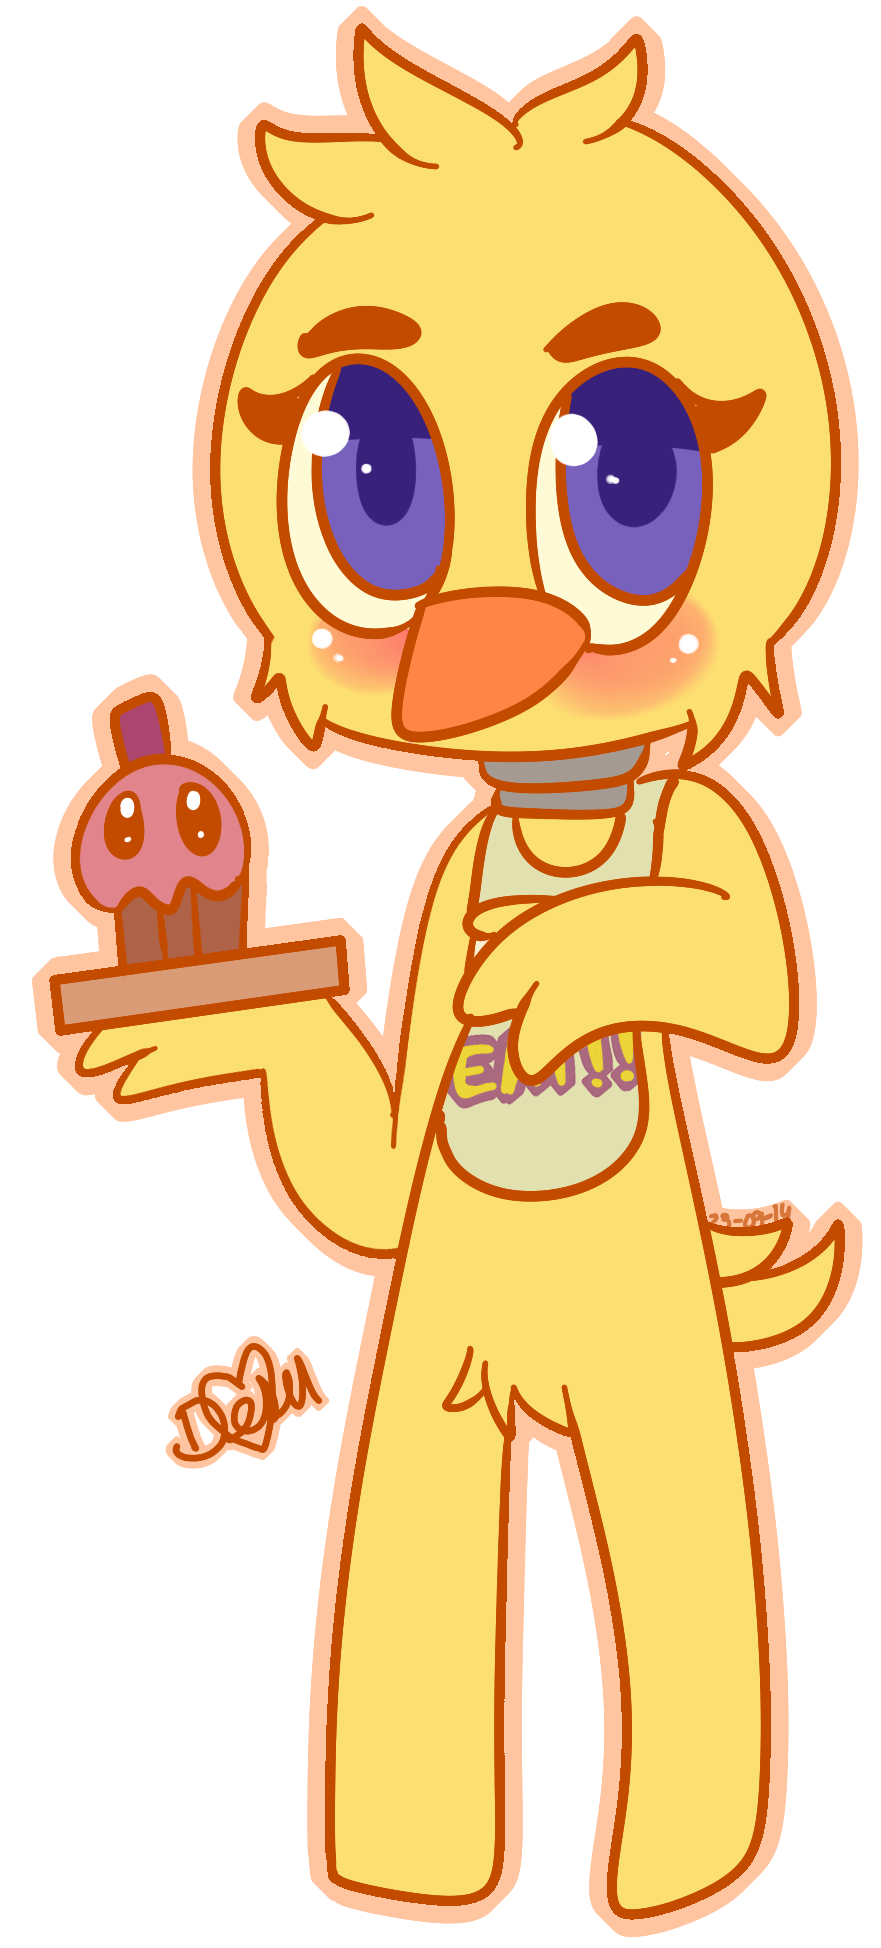 Kawaii chica by damian fluffy doge on deviantart